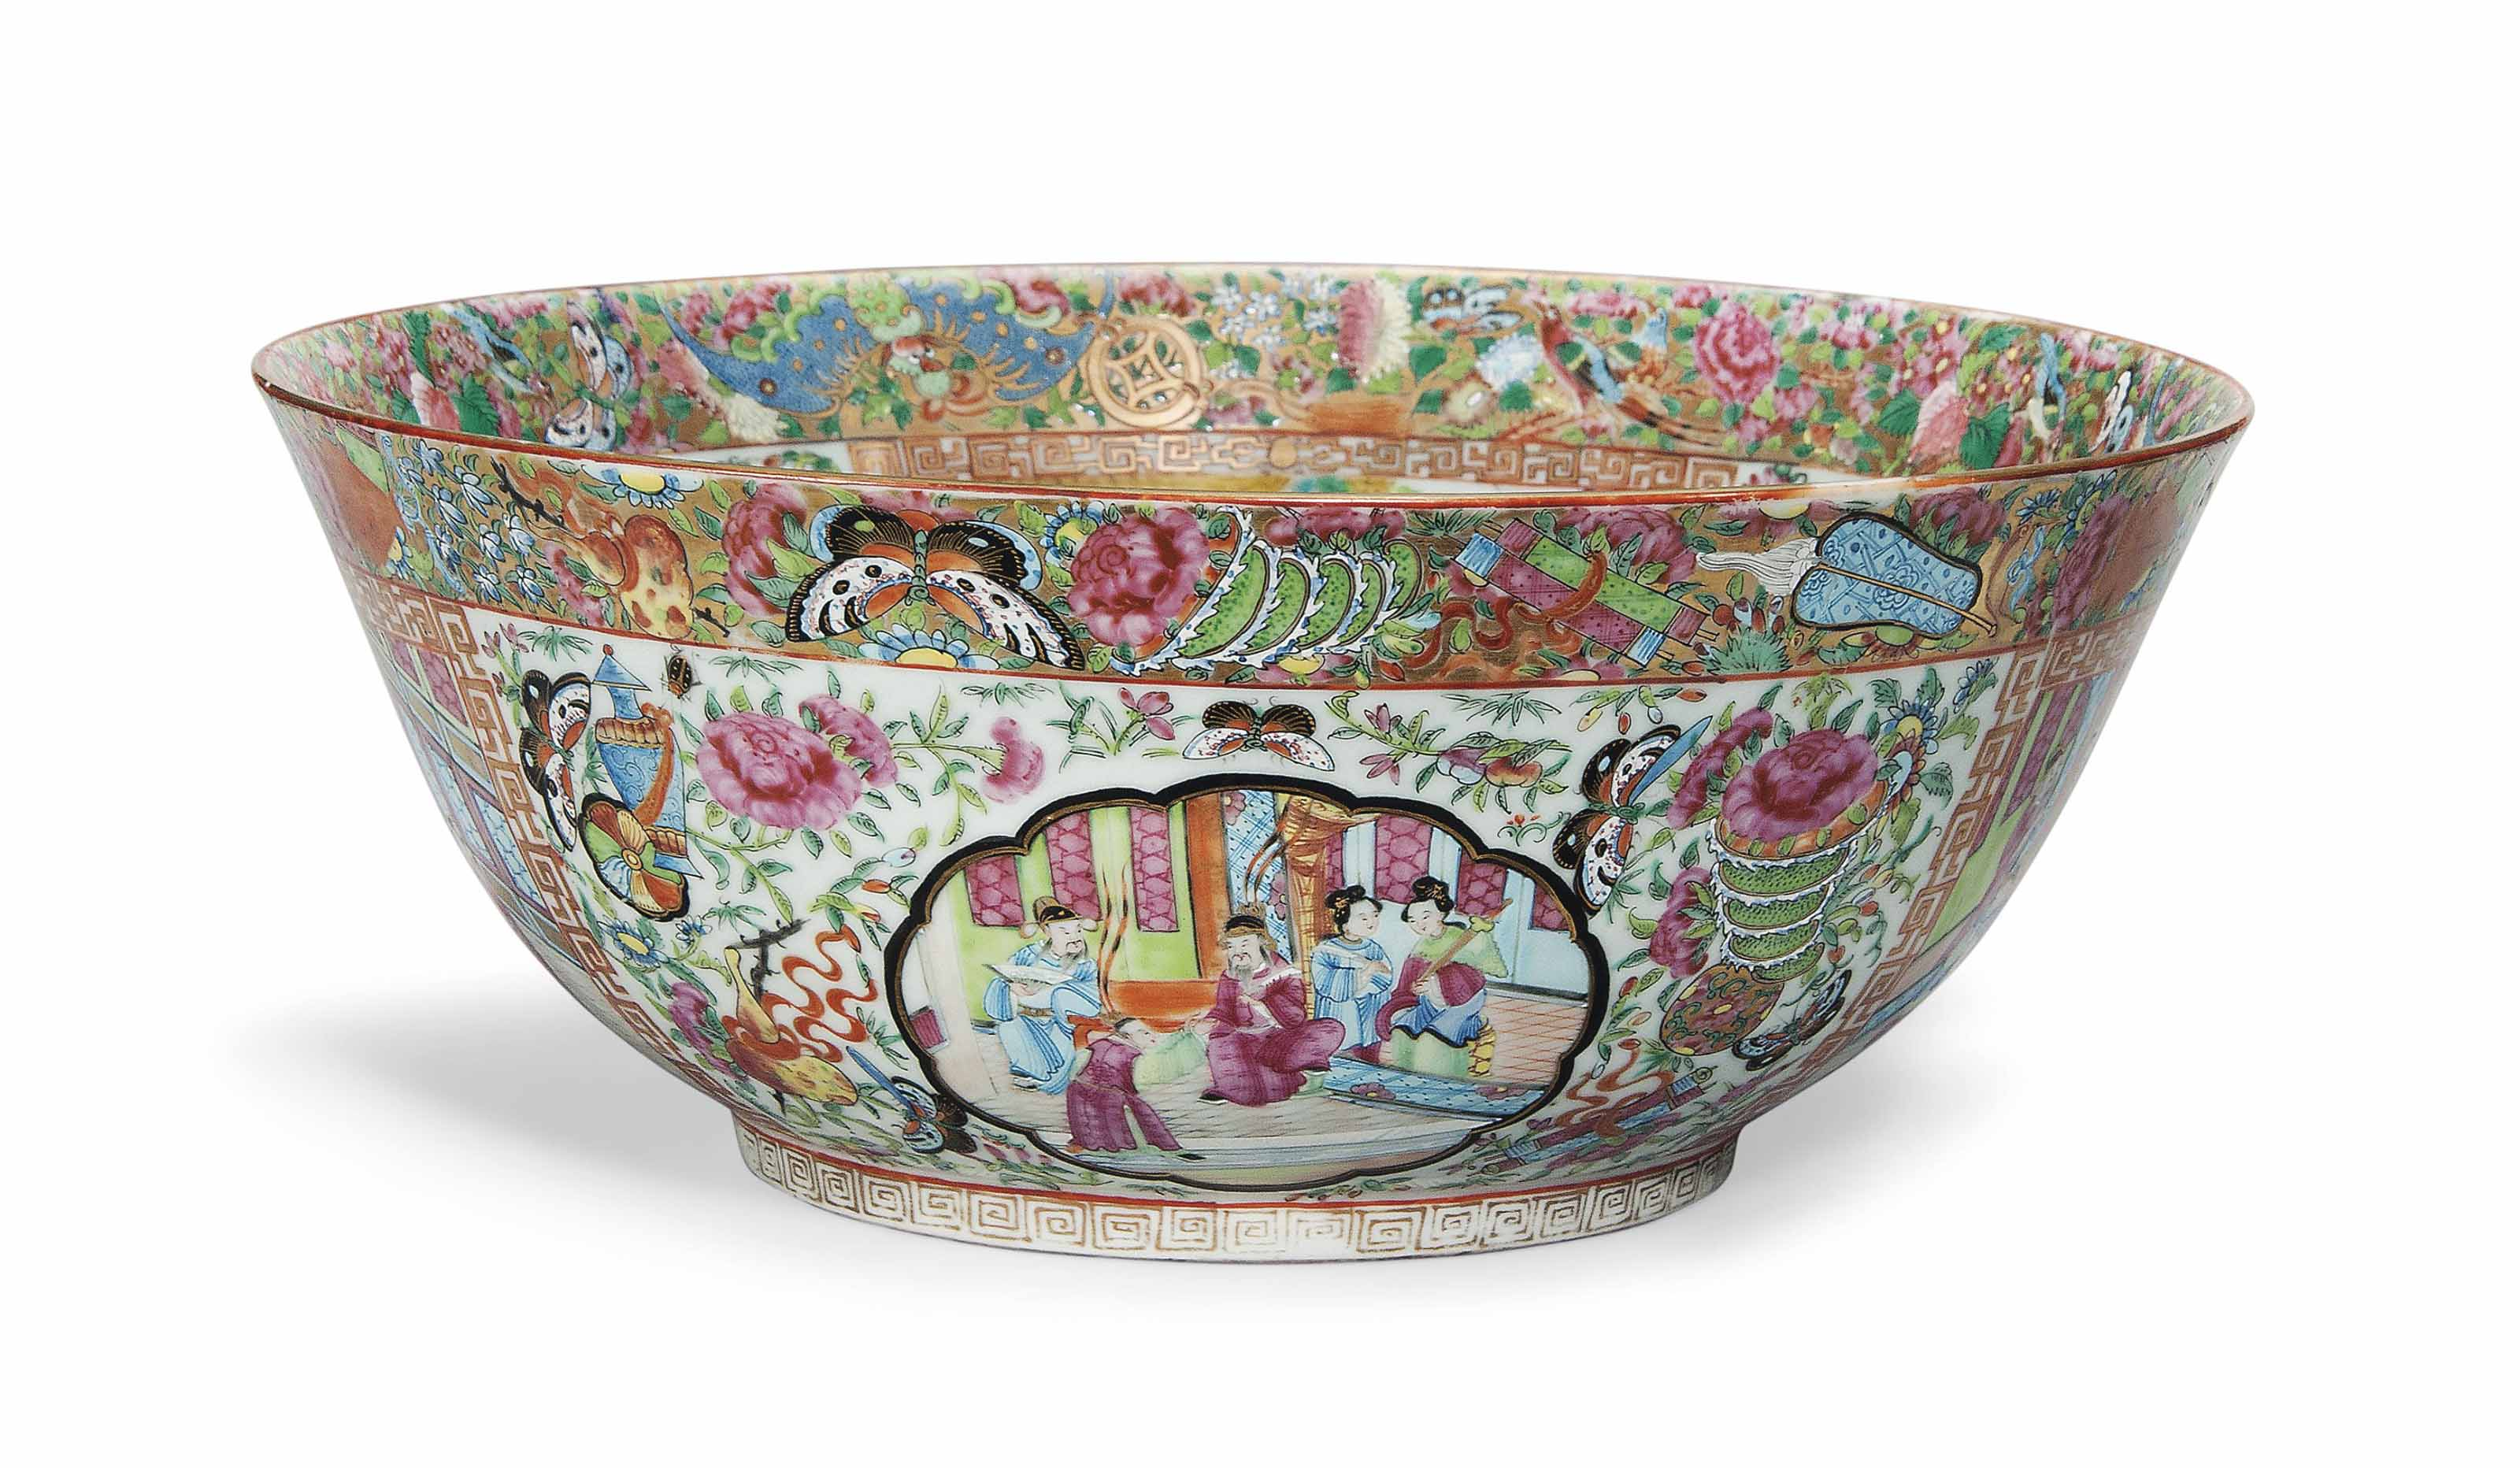 A CANTONESE FAMILLE ROSE PUNCH BOWL